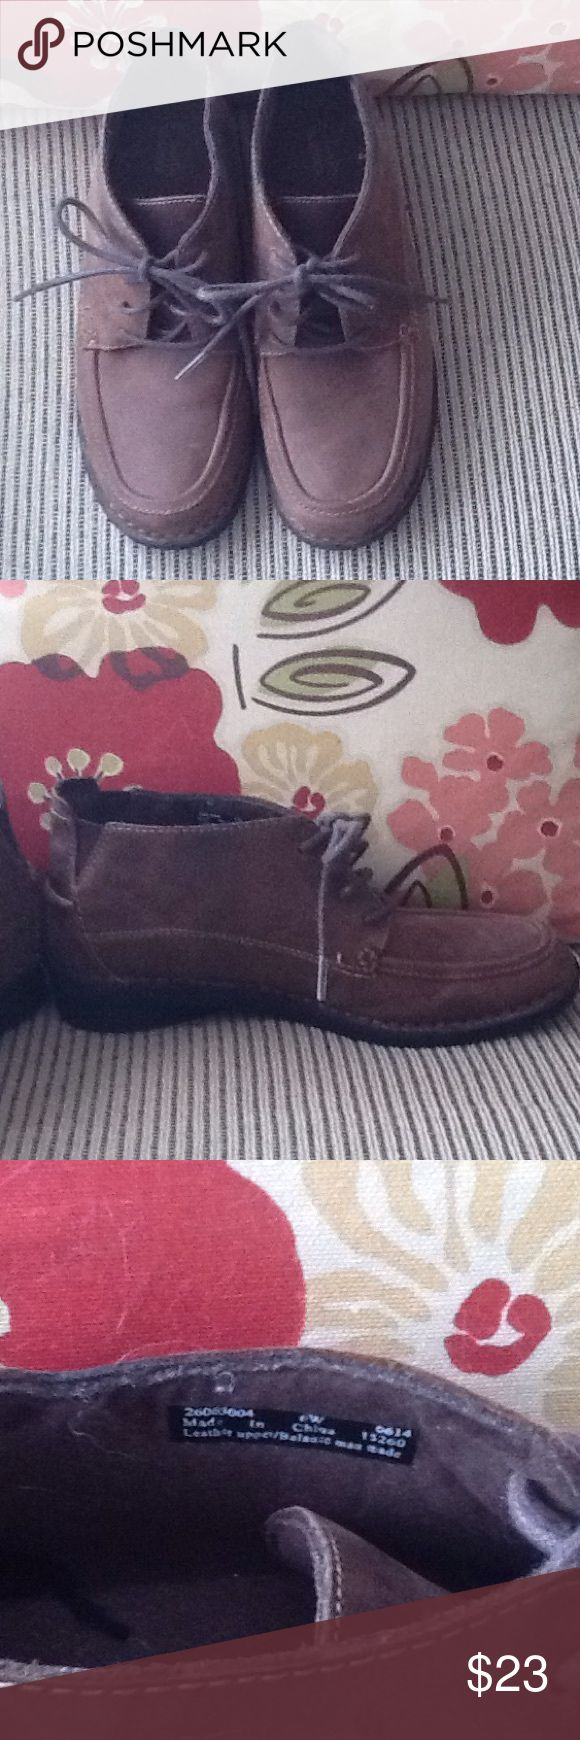 Clarks Chukka boots Brown chukka boots in excellent condition!!!  Size 6w Clarks Shoes Ankle Boots & Booties